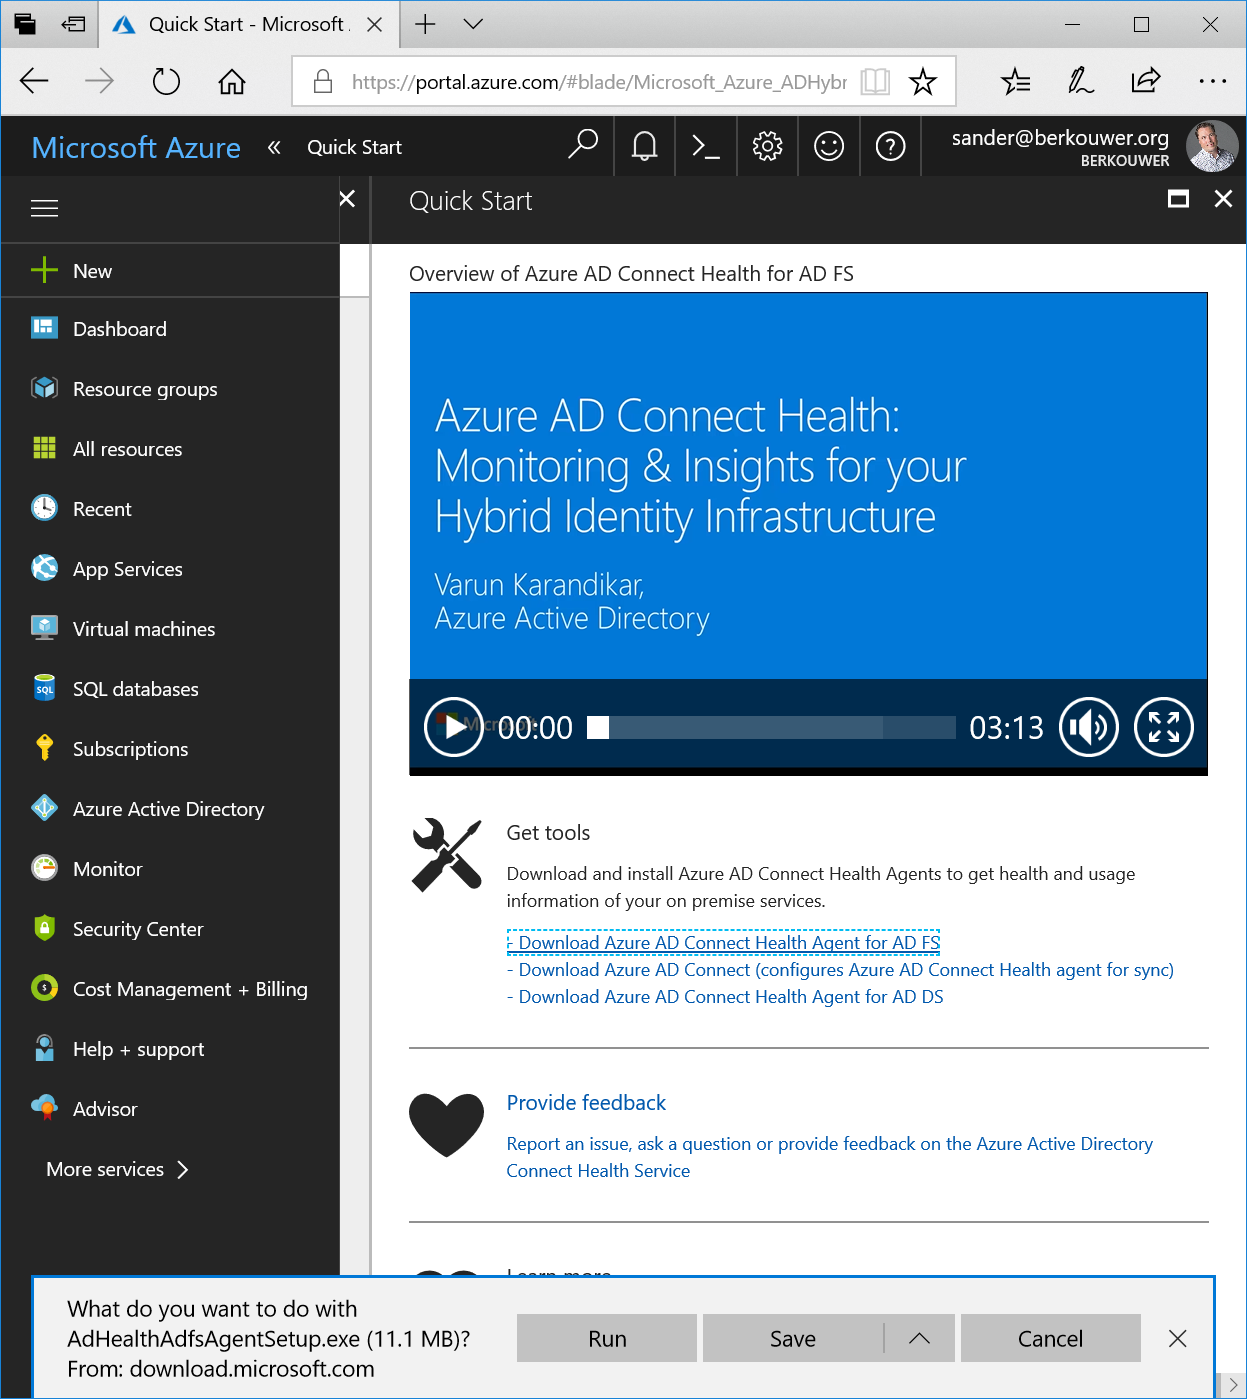 Configuring the Azure AD Connect Health Agent for AD FS on